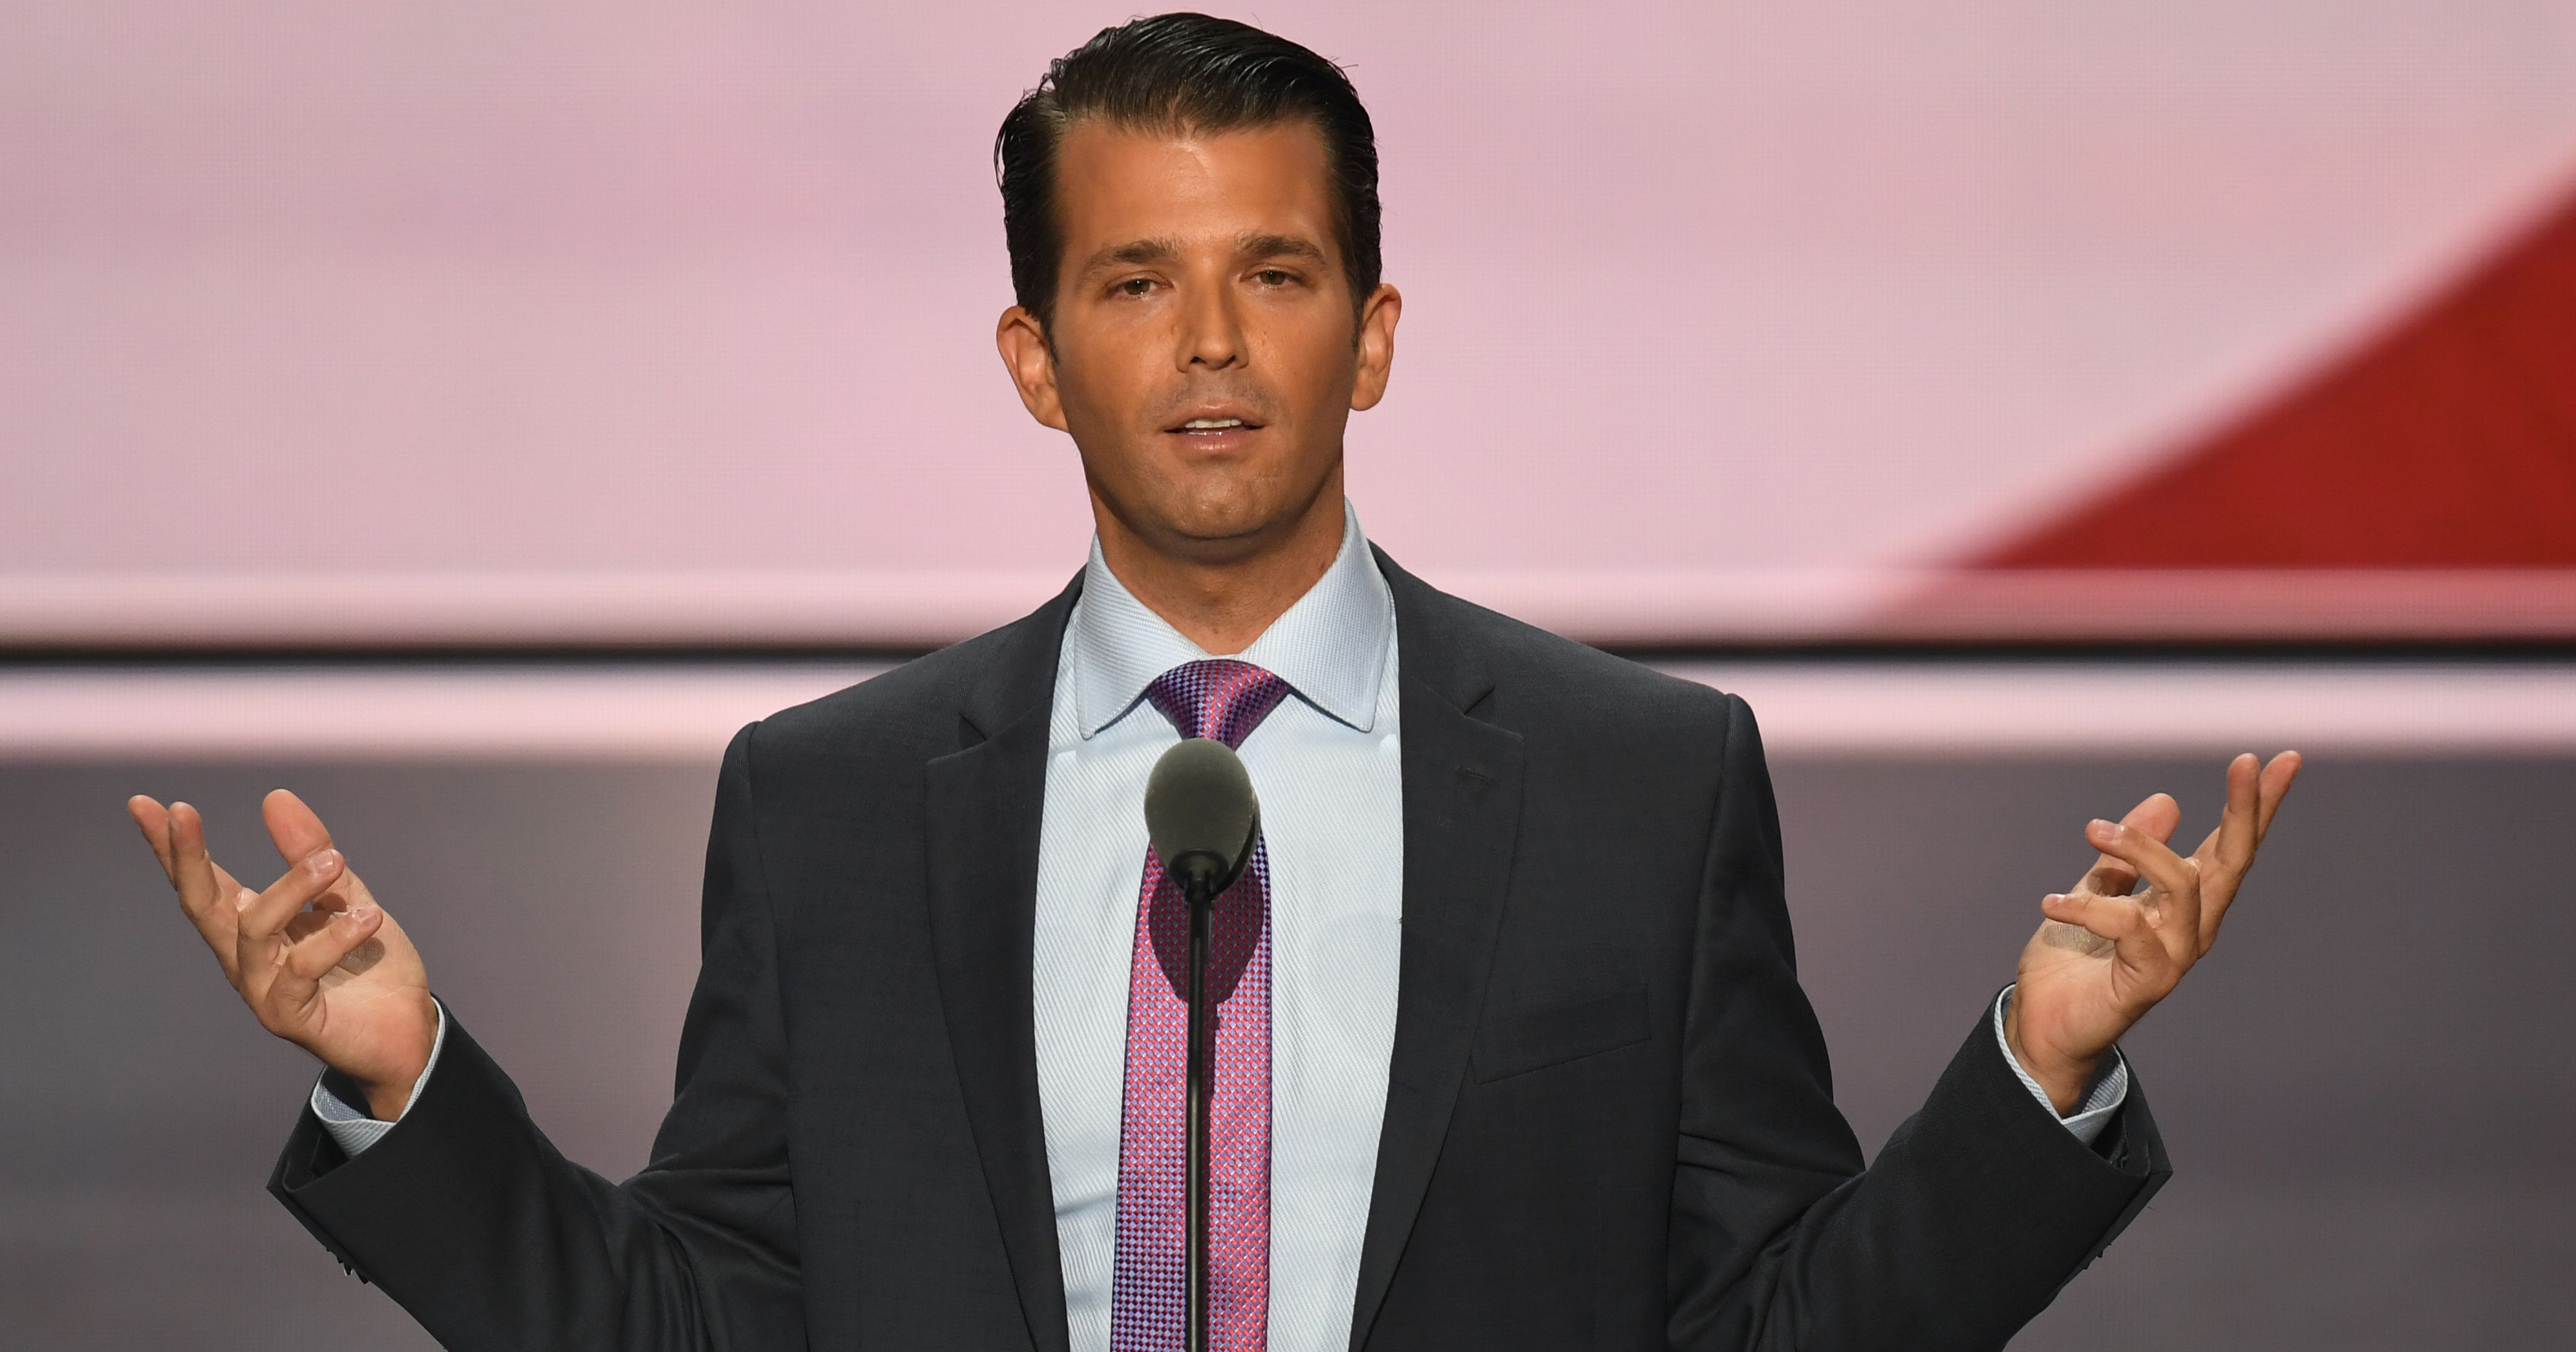 Donald Trump, Jr. in Cleveland, on July 19, 2016.